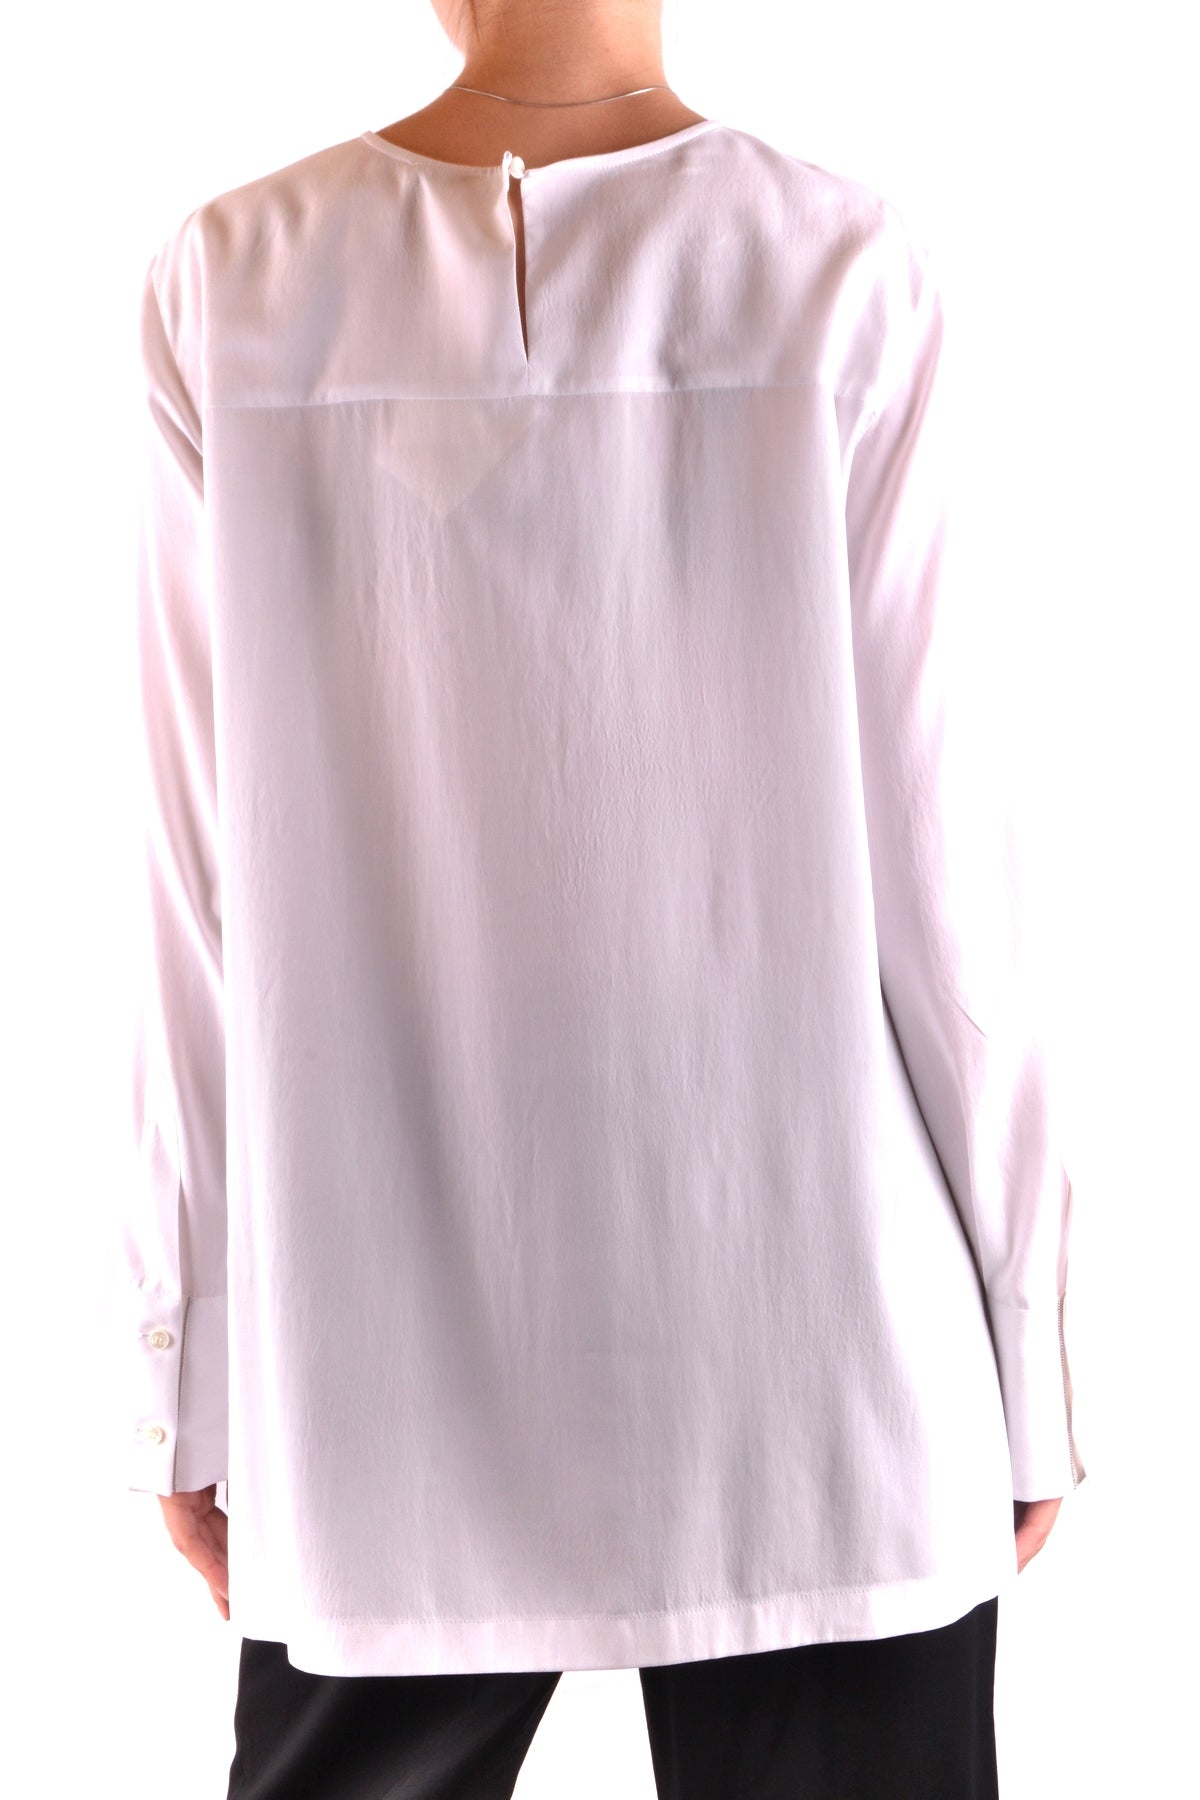 Shirt Brunello Cucinelli-Shirt - WOMAN-Product Details Terms: New With LabelYear: 2018Main Color: WhiteGender: WomanMade In: ItalyManufacturer Part Number: Mf948D4000Size: IntSeason: Spring / SummerClothing Type: CamiciaComposition: Elastane 8%, Silk 92%-Keyomi-Sook